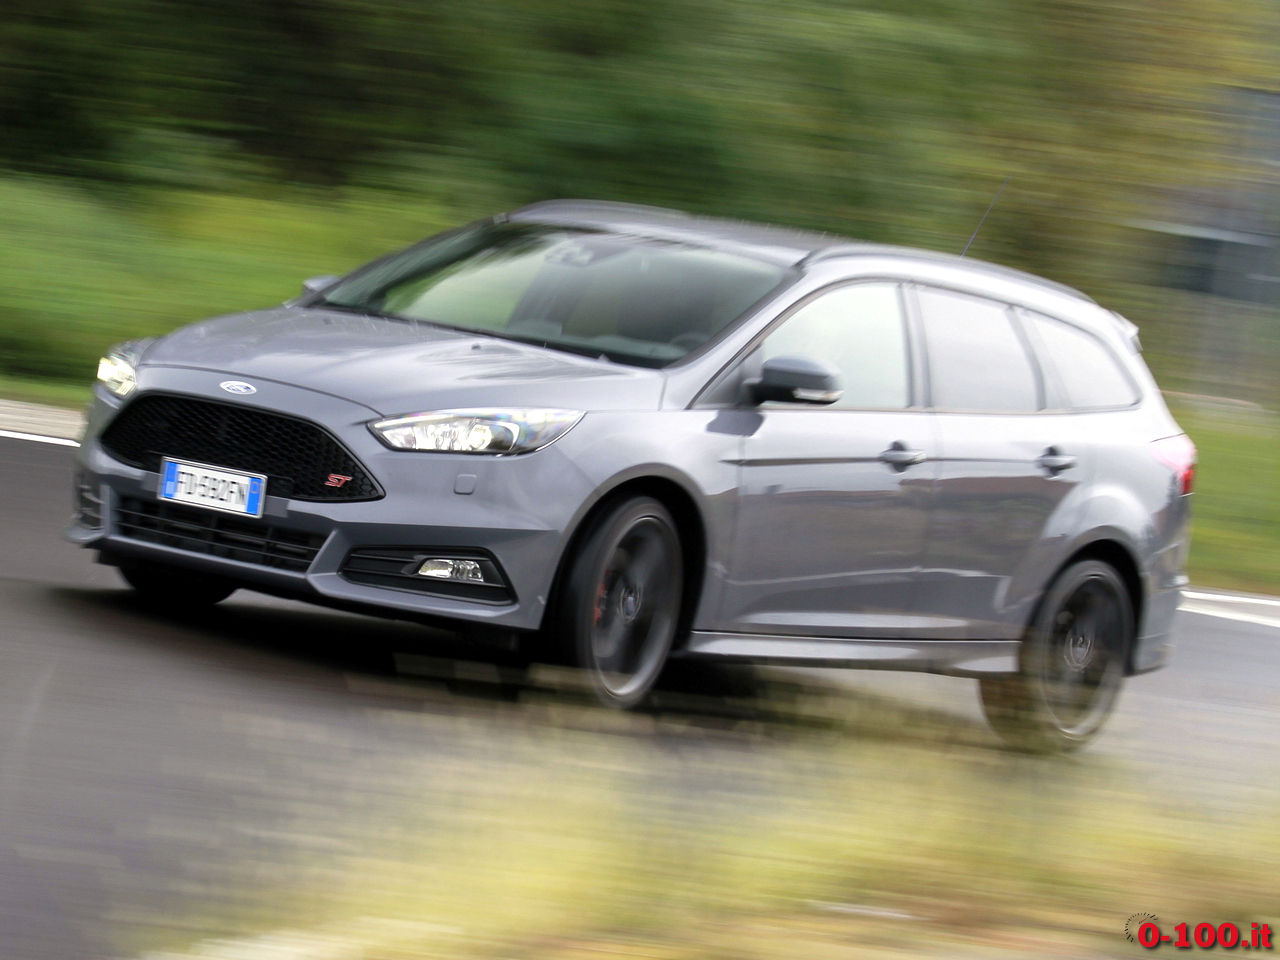 test-drive-ford-focus-dci-st-station-wagon_0-100_14